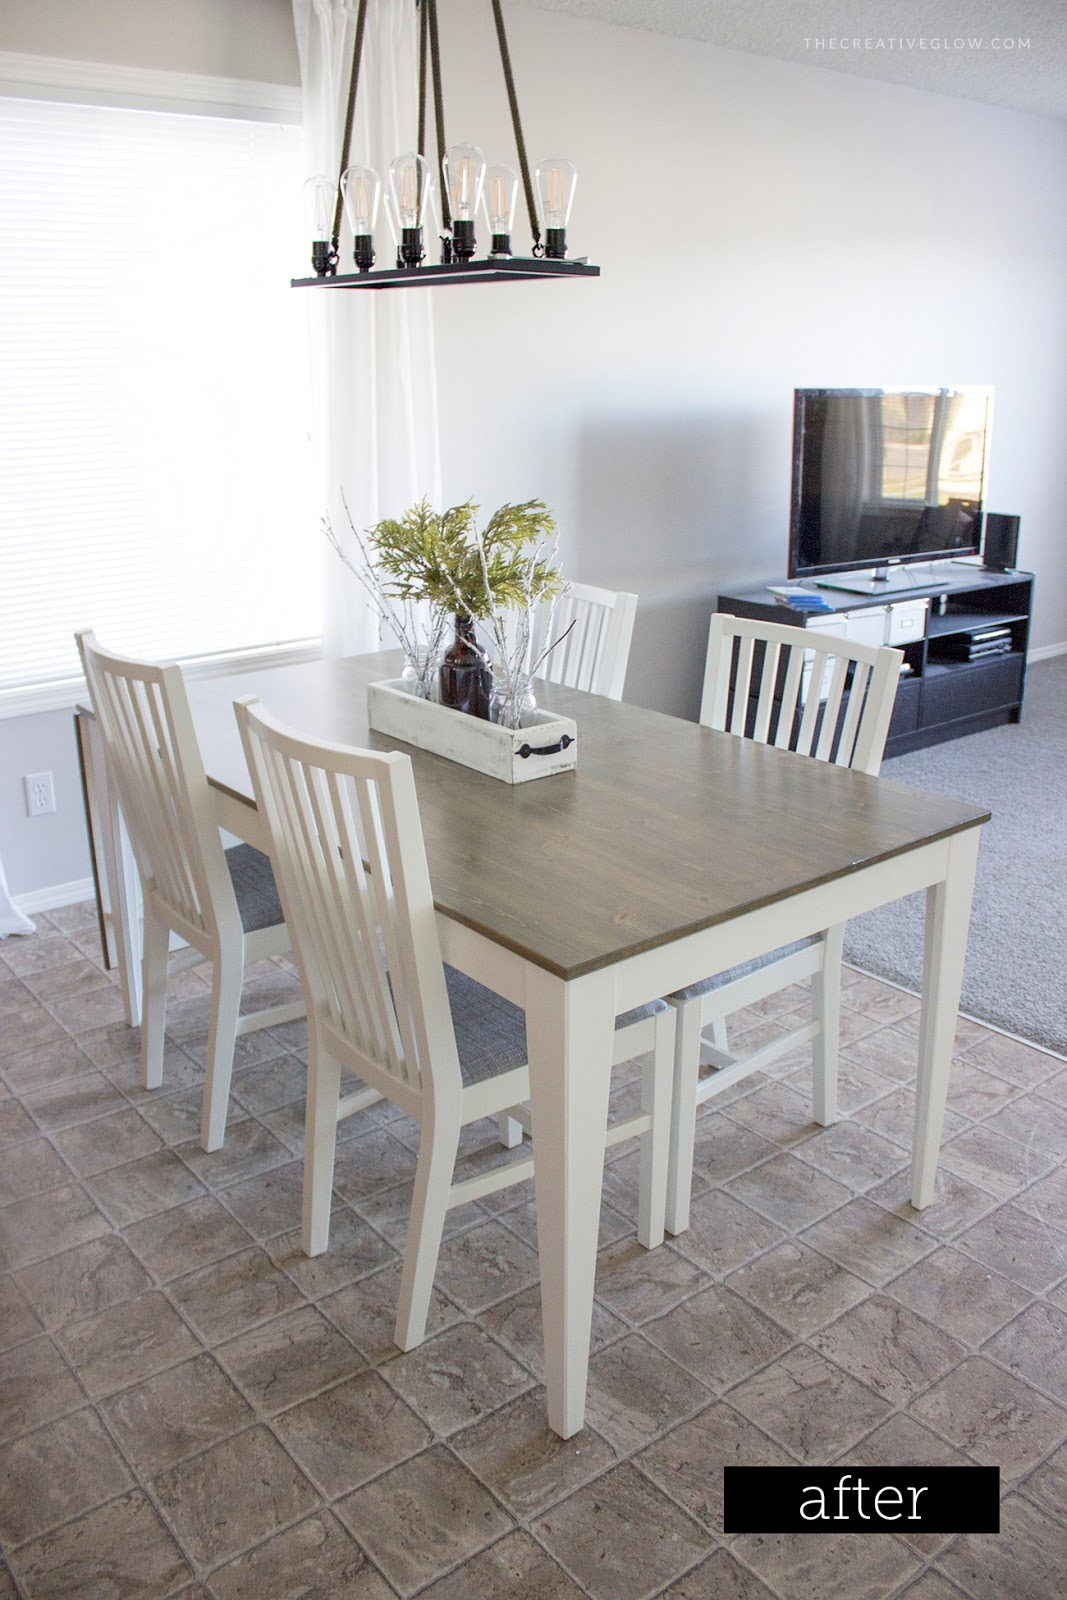 Dining Room Tables Ikea at Home and Interior Design Ideas